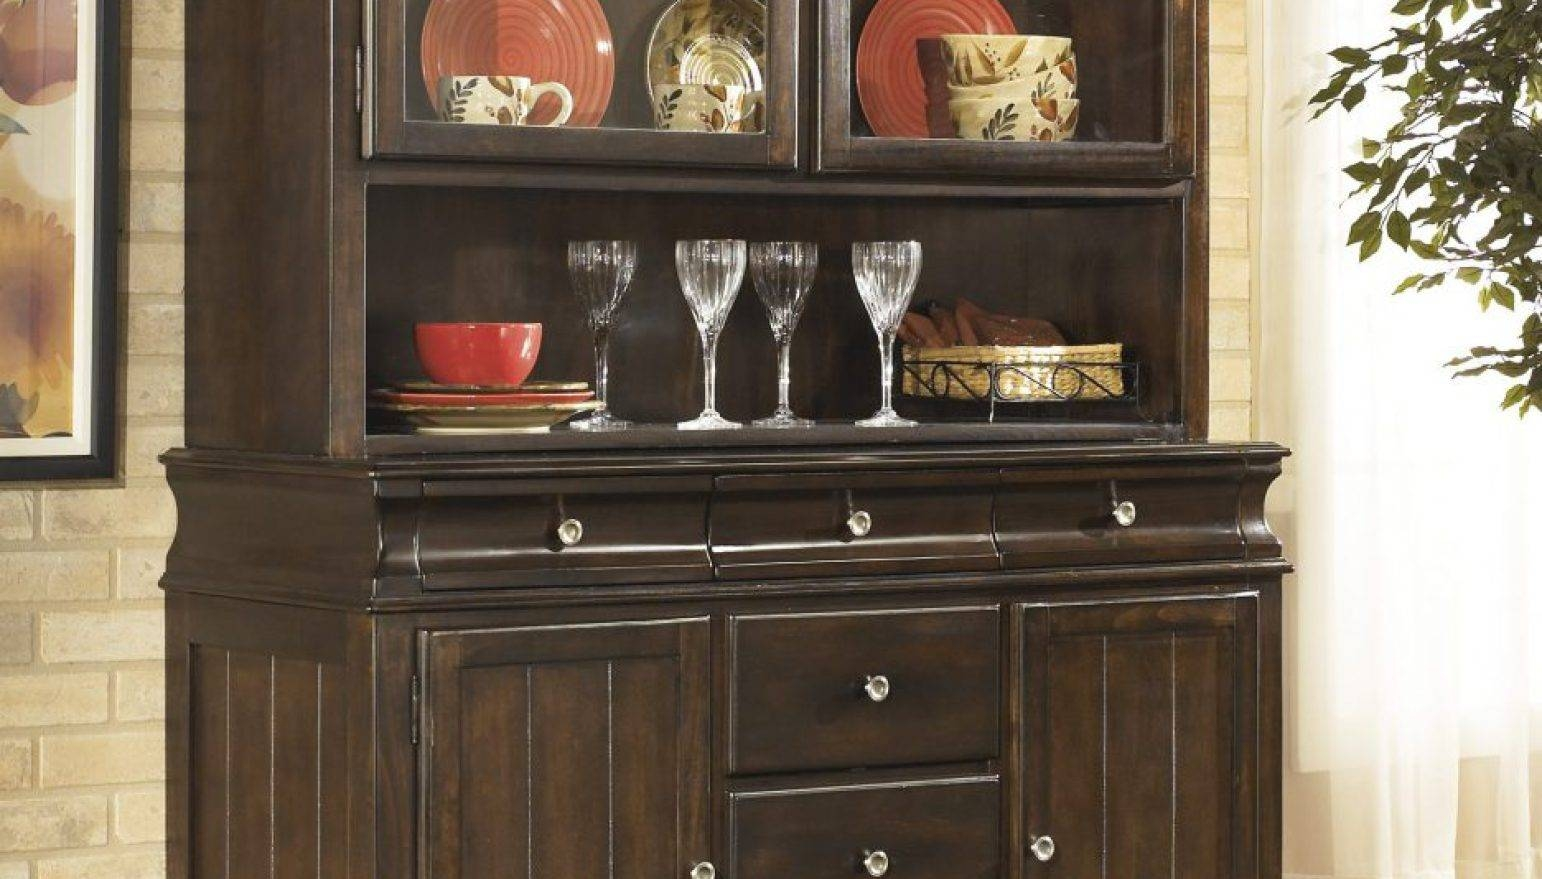 Sideboard : Cheap Buffet Tables Sideboards Horrifying Vintage in 42 Inch Sideboards (Image 11 of 15)